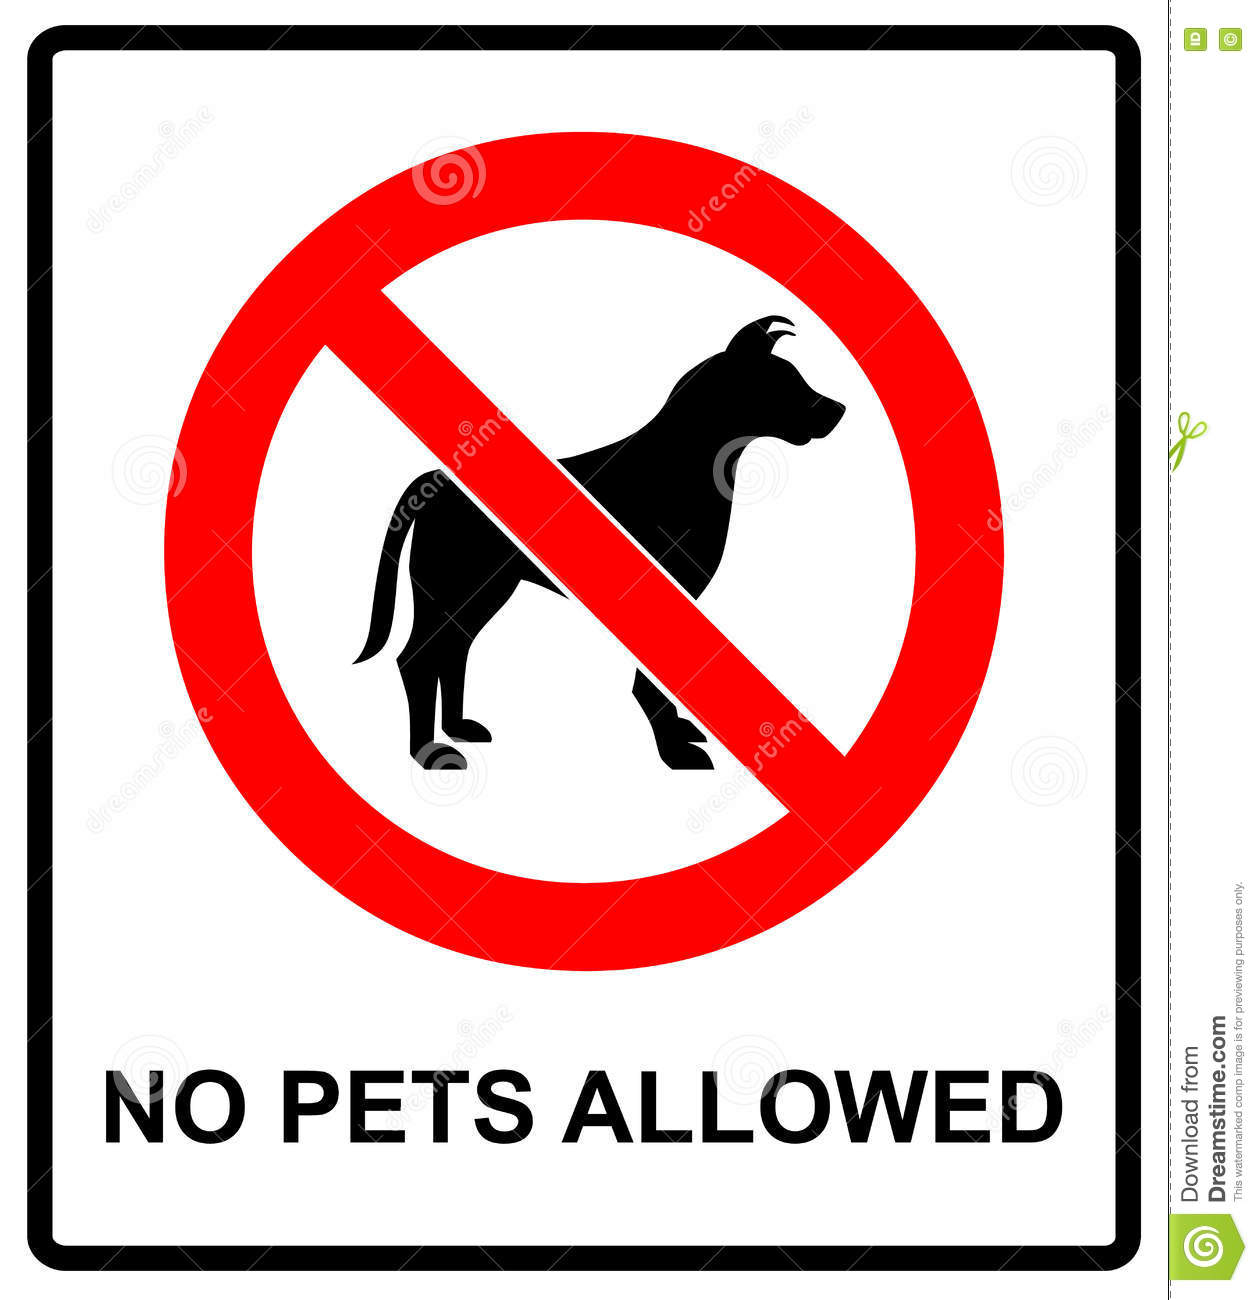 no pet allowed sign illustration vector no dogs please warning